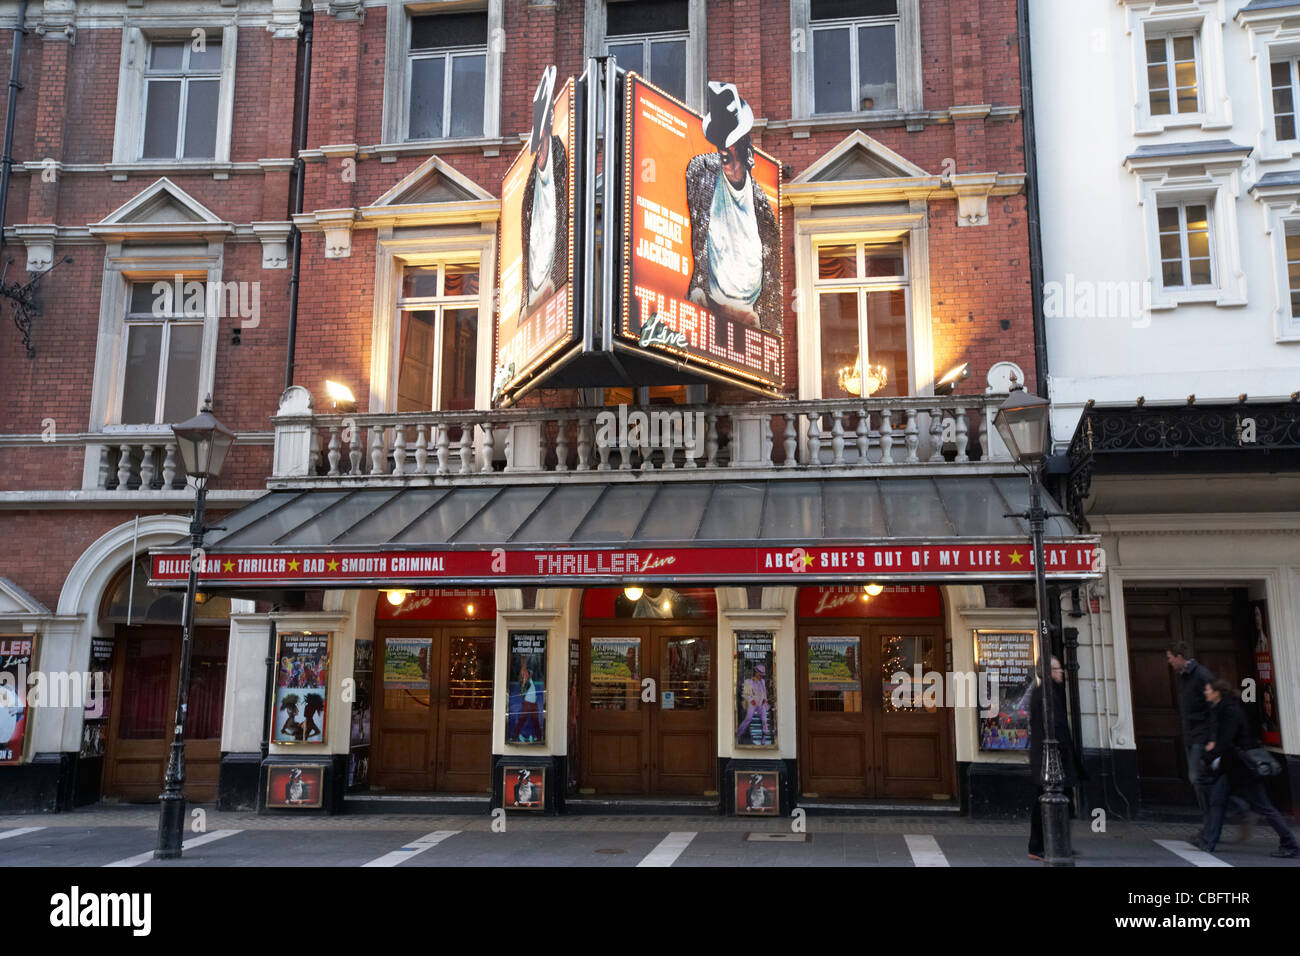 the lyric theatre showing thriller live in theatreland west end london england uk united kingdom - Stock Image